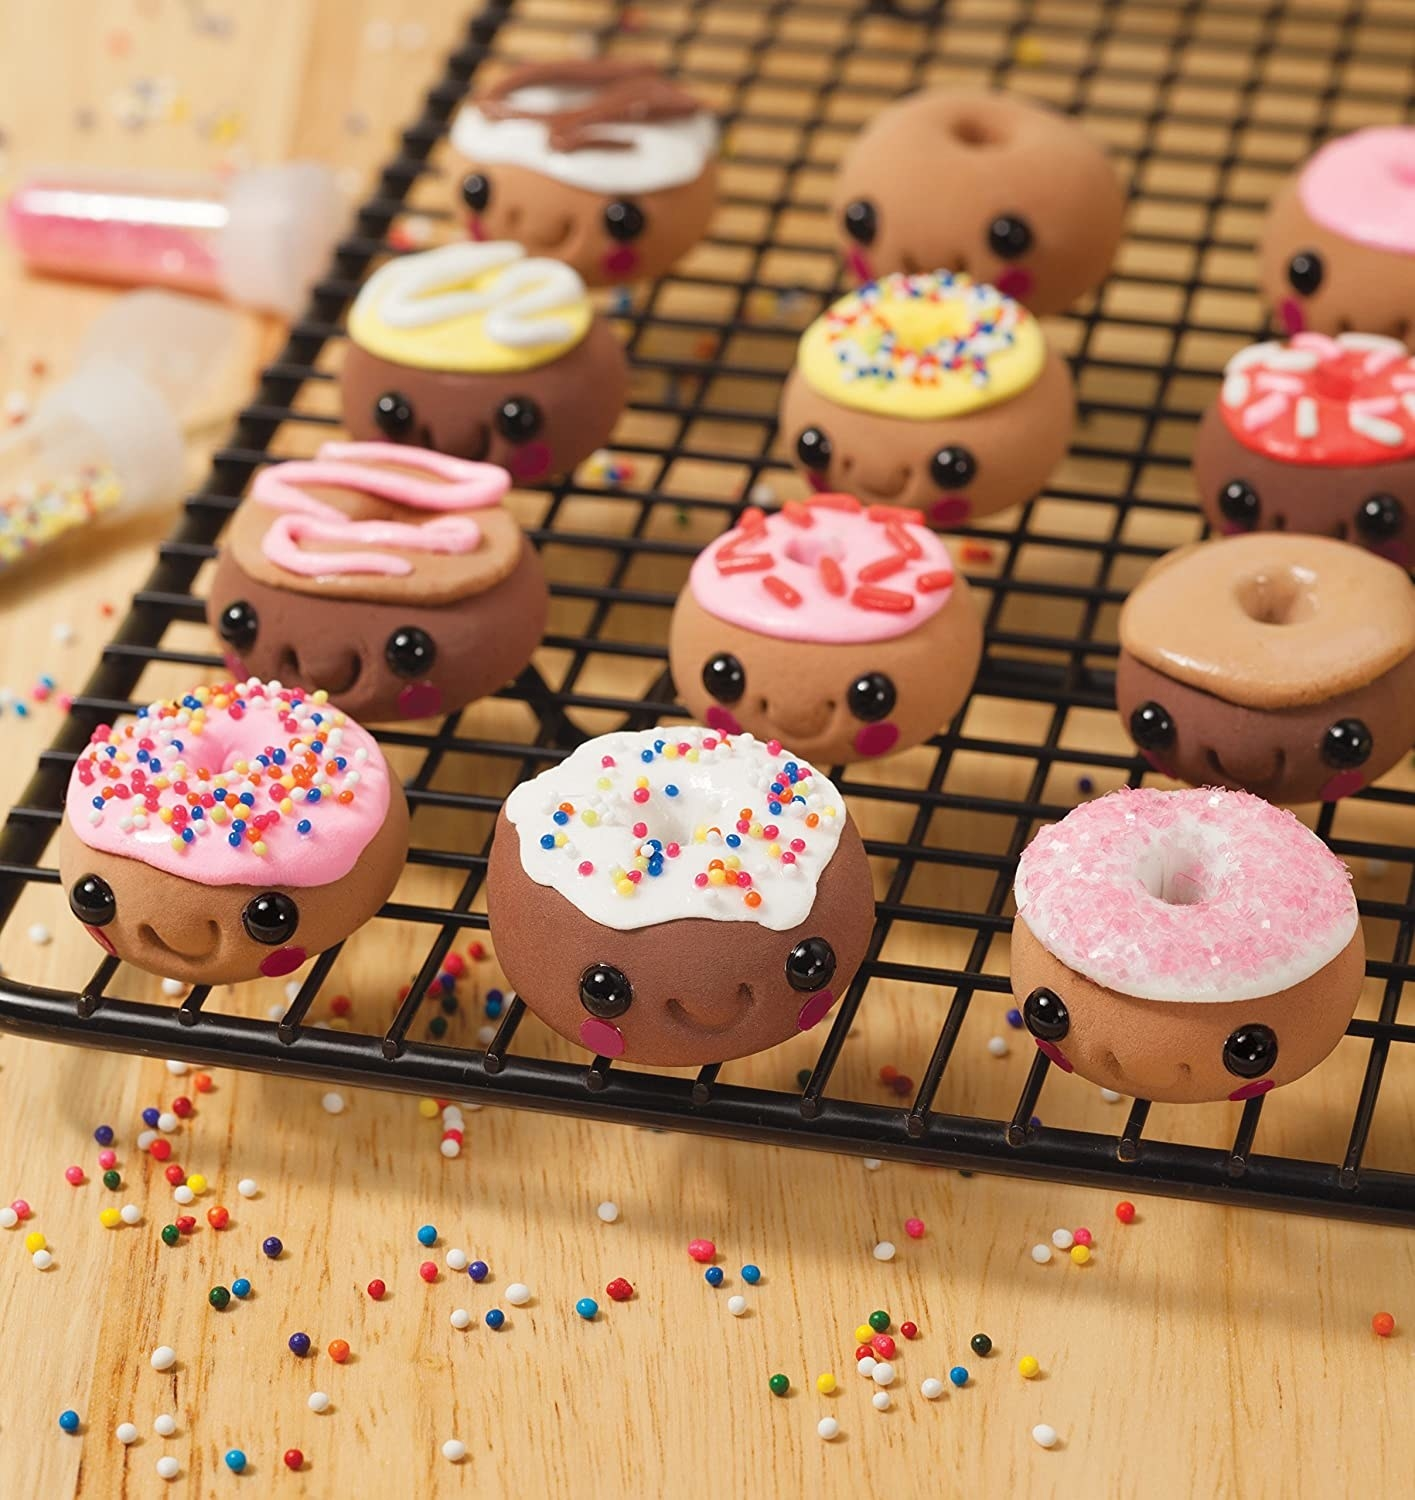 Mini clay donuts with smiling faces sitting on a cooling rack